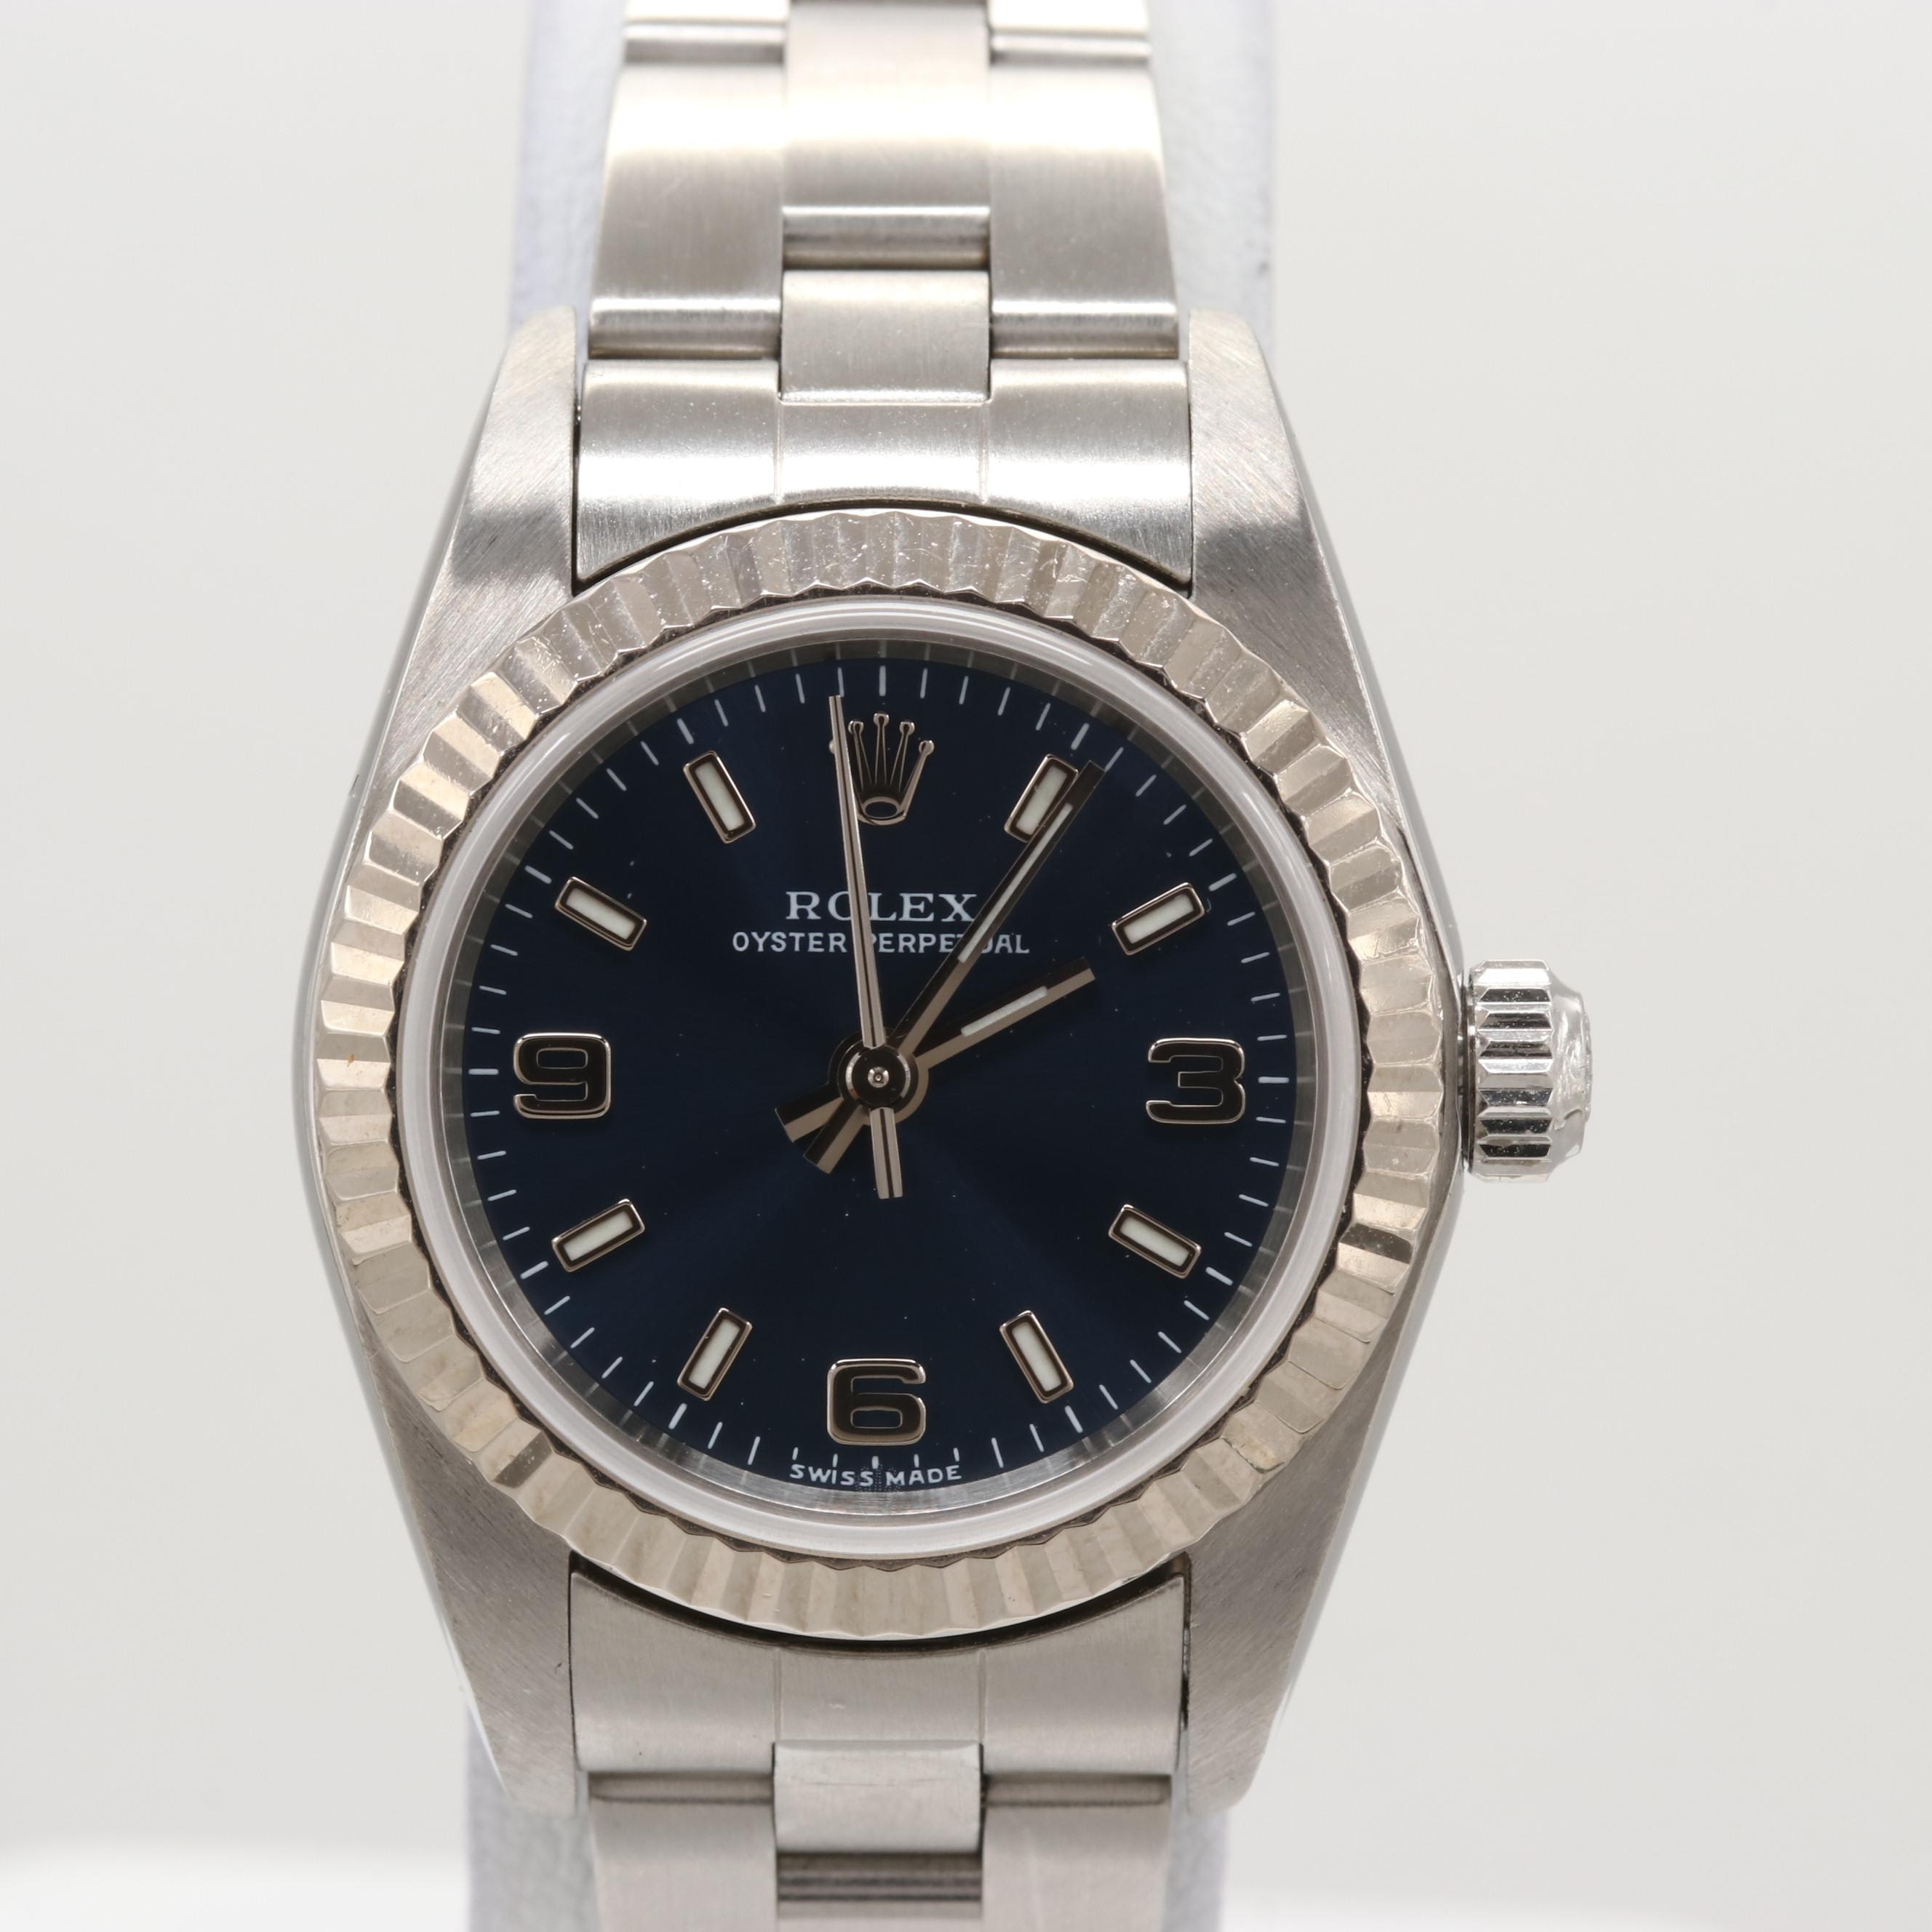 Rolex Oyster Perpetual Stainless Steel and 18K White Gold Wristwatch, 2002